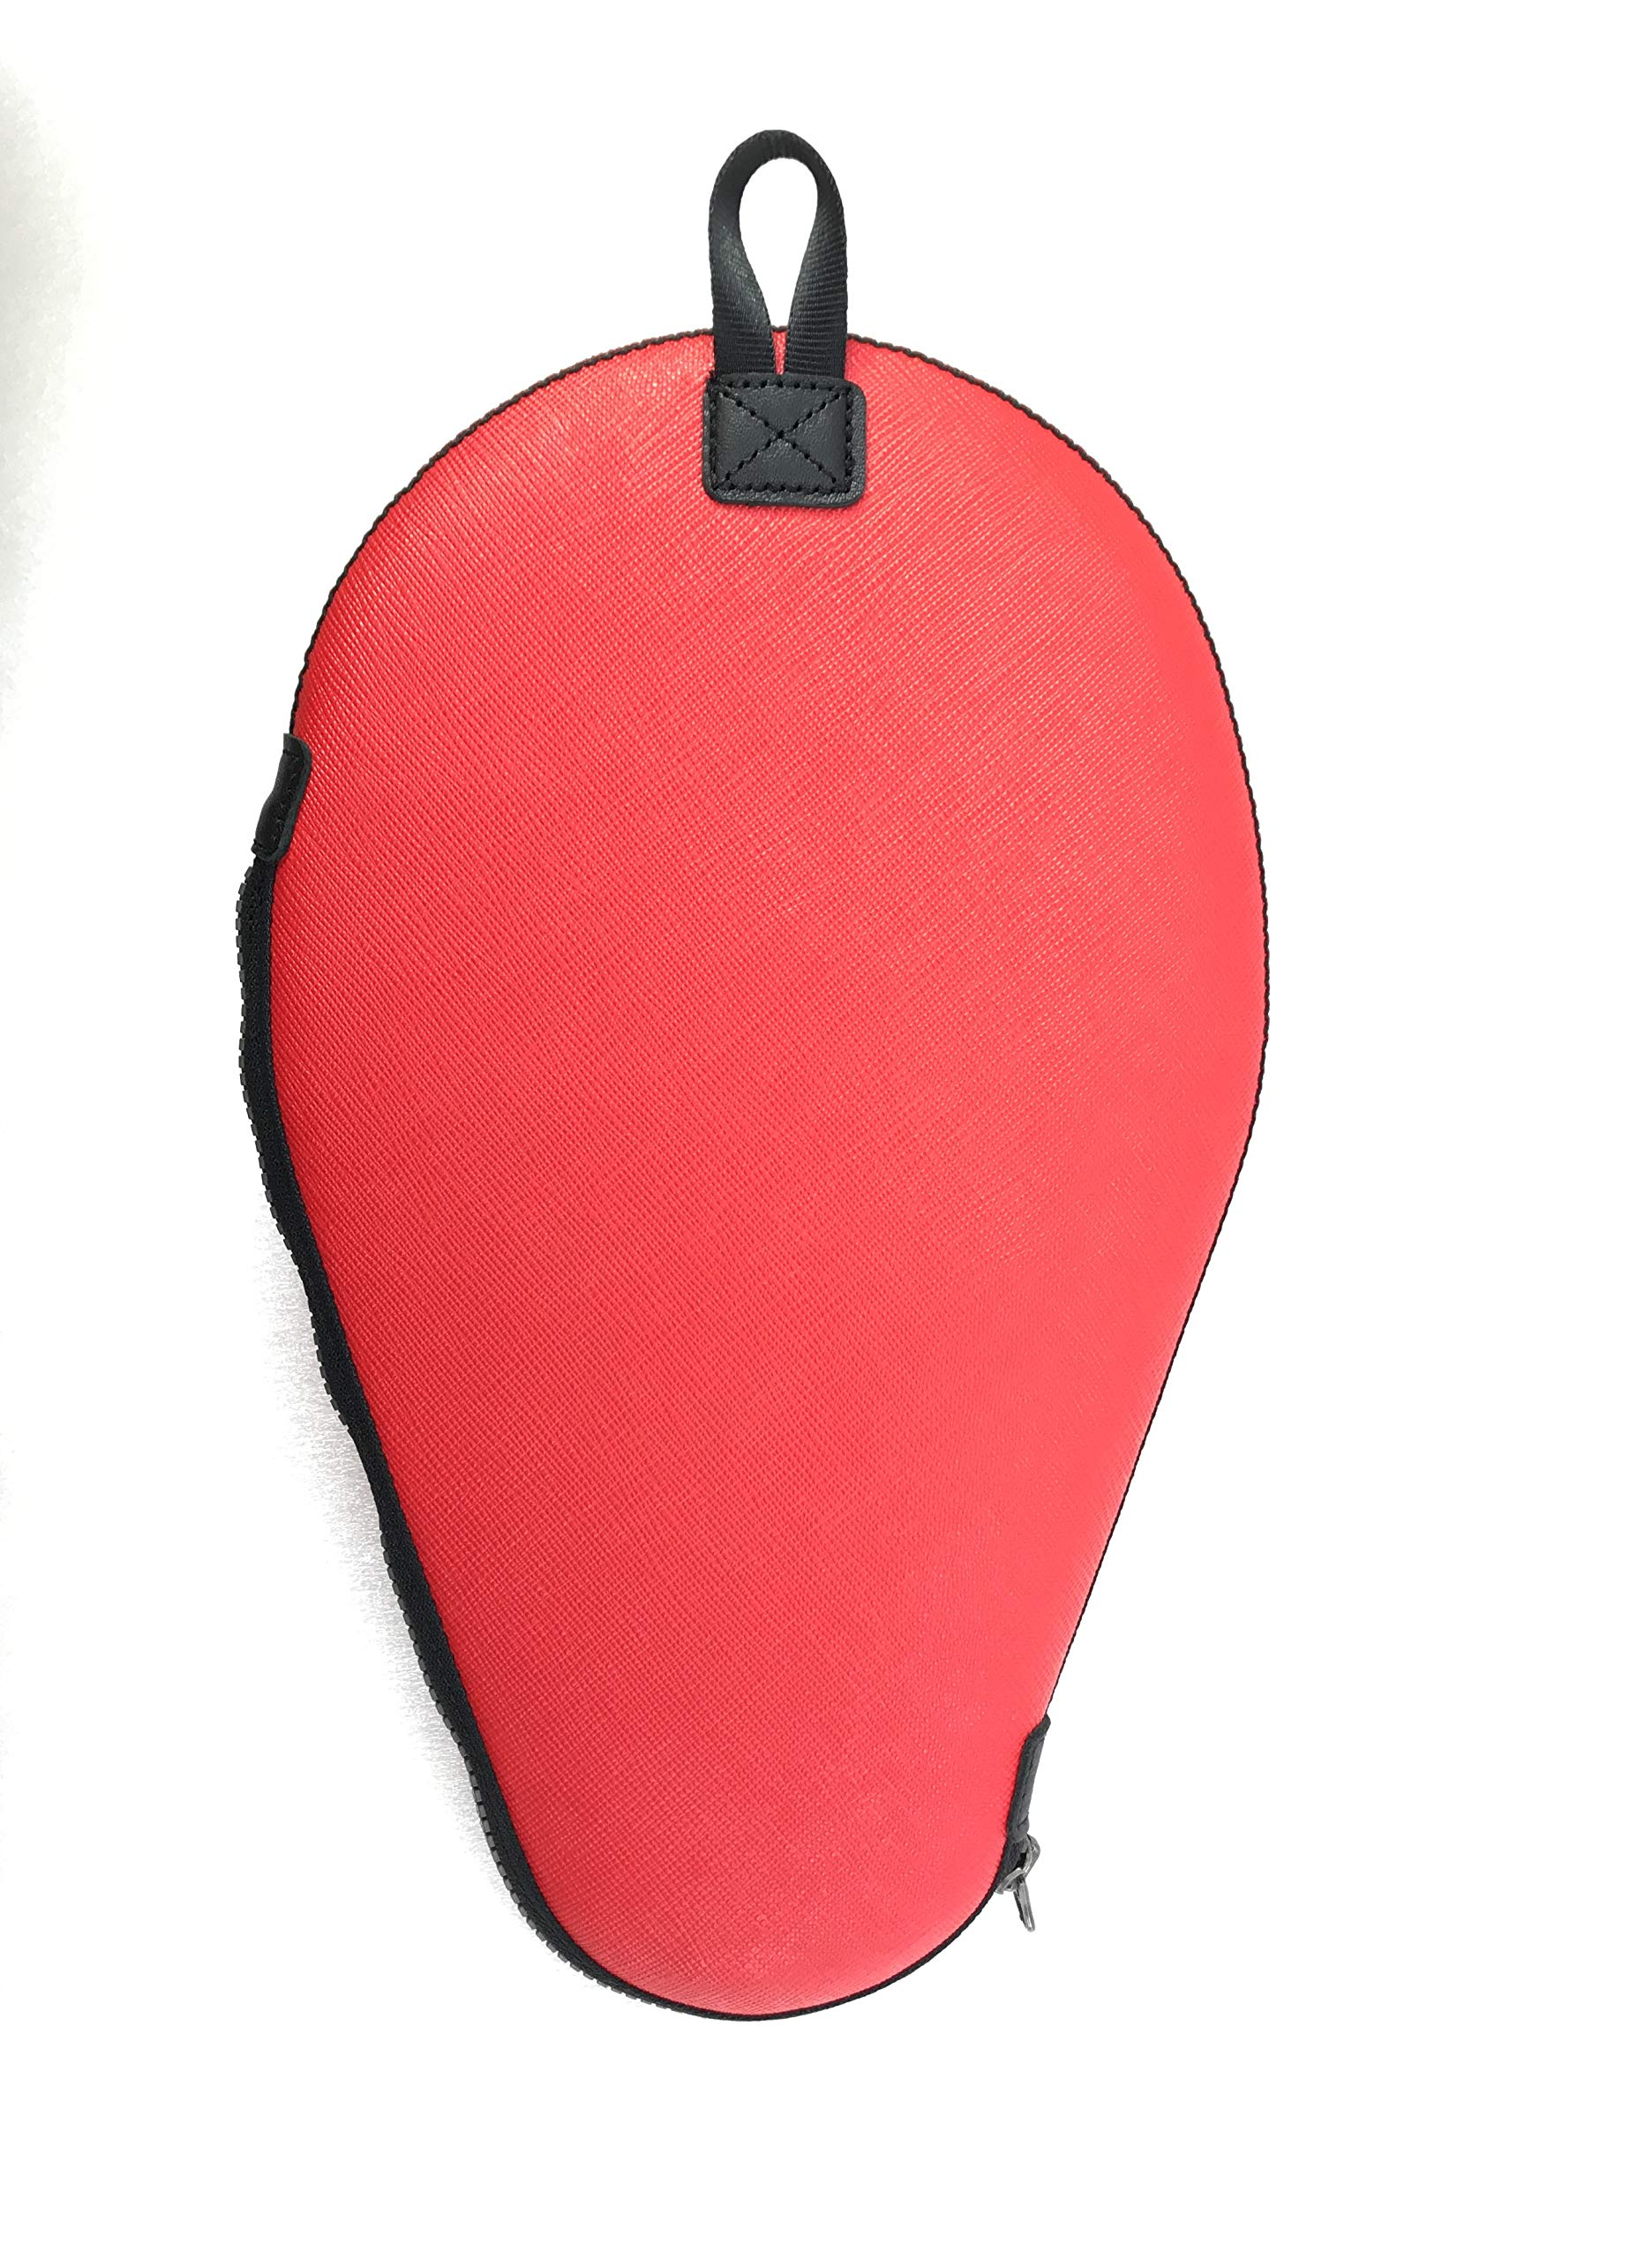 ONEJOY Ping Pong, Table Tennis Racquet Bag,Case,Cover with Zipper AJ61,Loop to Hook, Full Cover 28cm x 17cm for 1 Racquet/Racket/Paddle. by ONEJOY (Image #2)